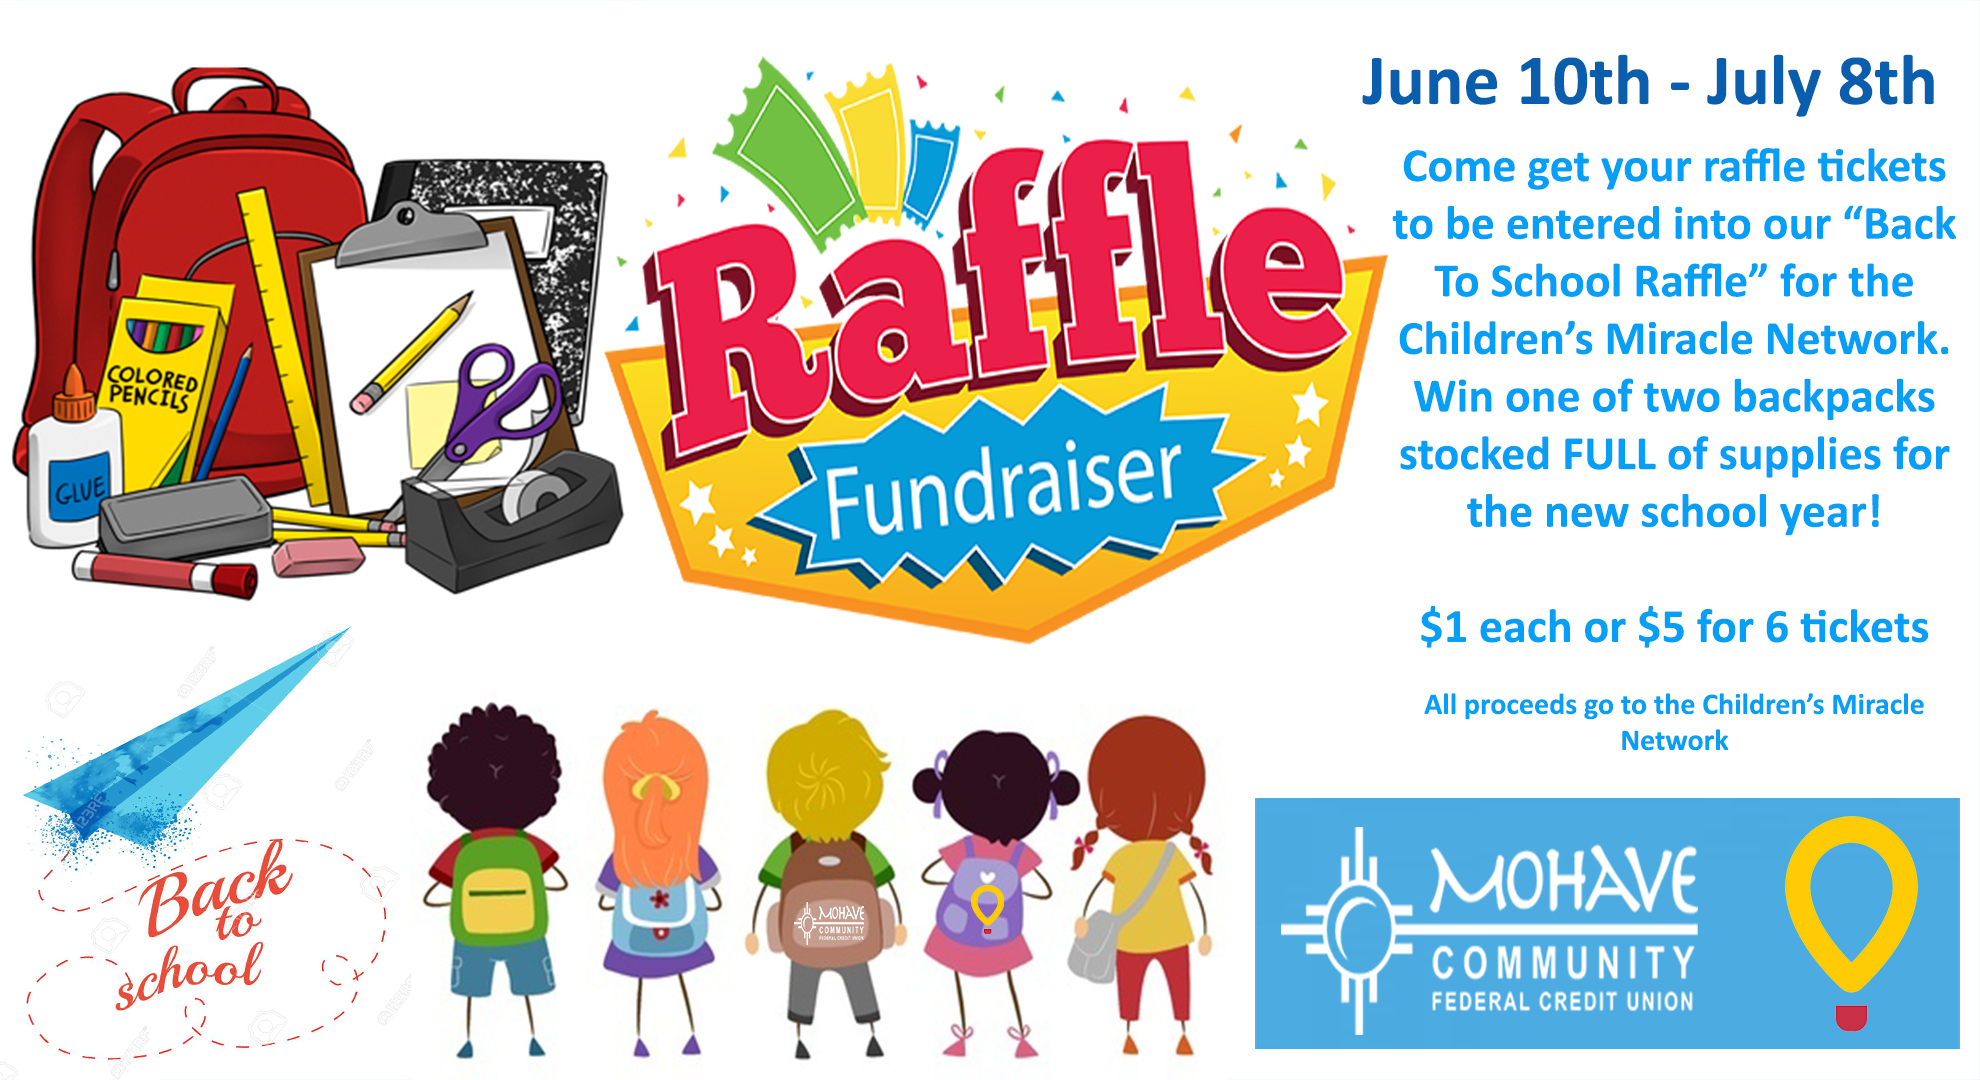 Chidlren's Miracle Network Raffle. One dollar each ticket or five dollars for six tickets. Win a backpack for a boy or a girl. June 1th - July 11th 2019. 100% of prcoeeds go to the Children's Miracle Network.